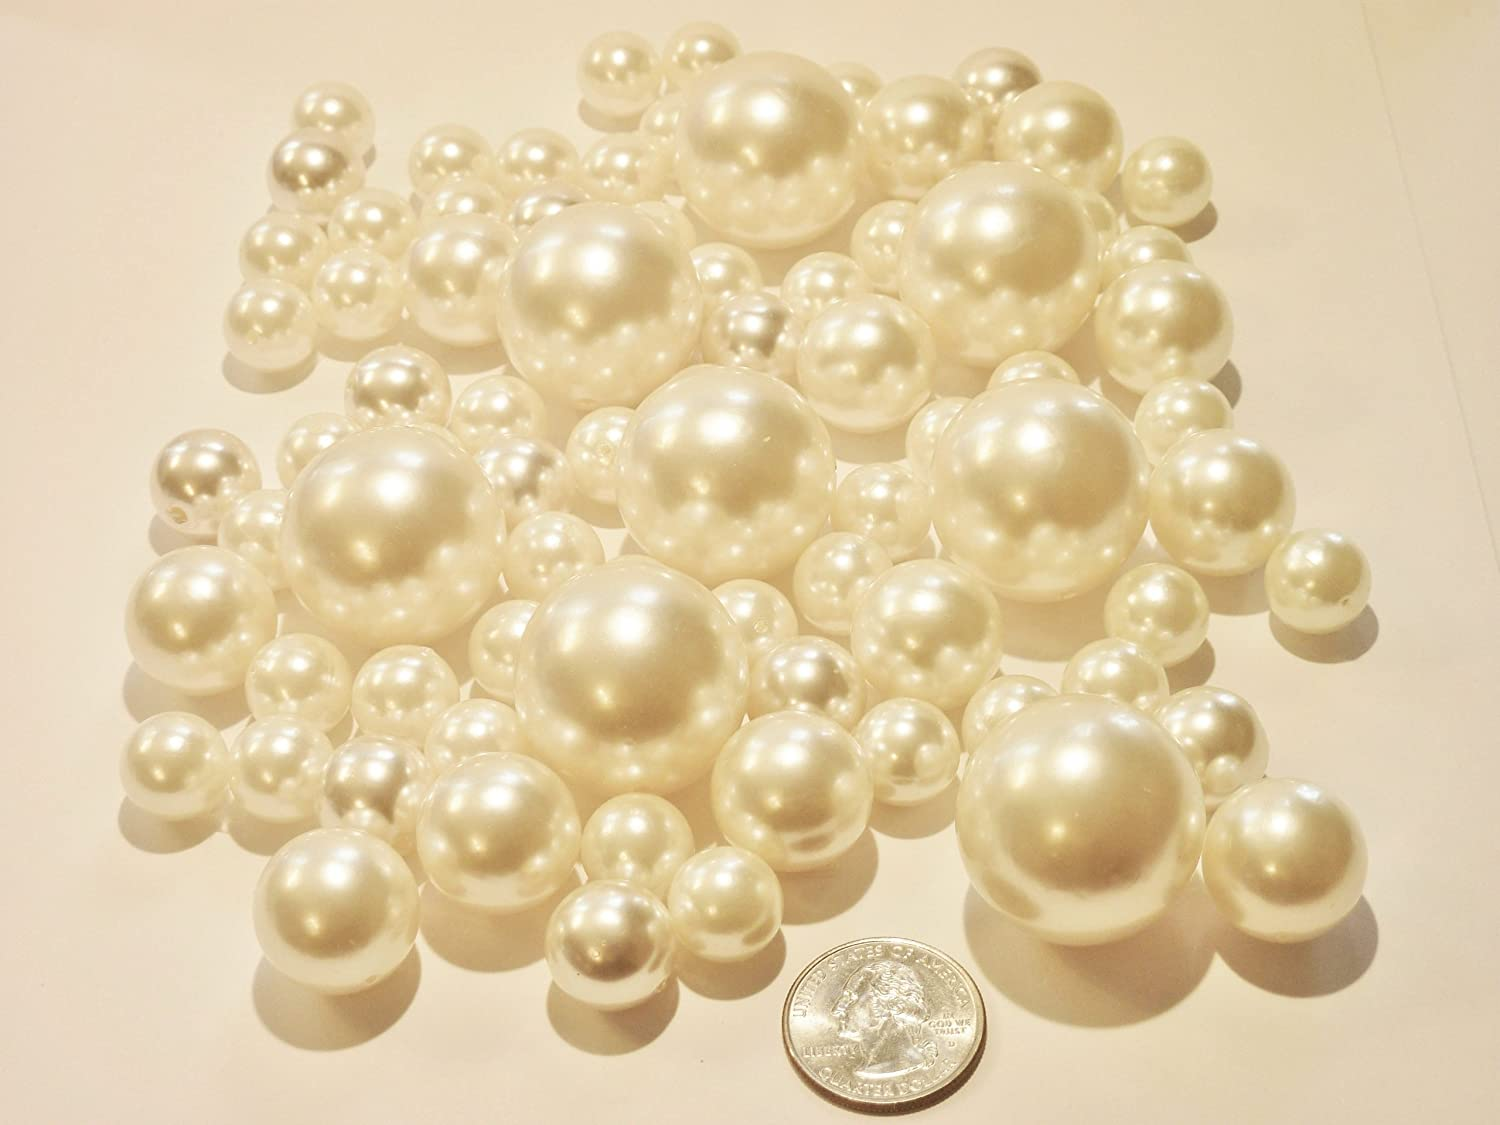 80 Jumbo & Assorted Sizes All IVORY Pearls - Value Pack Vase Fillers